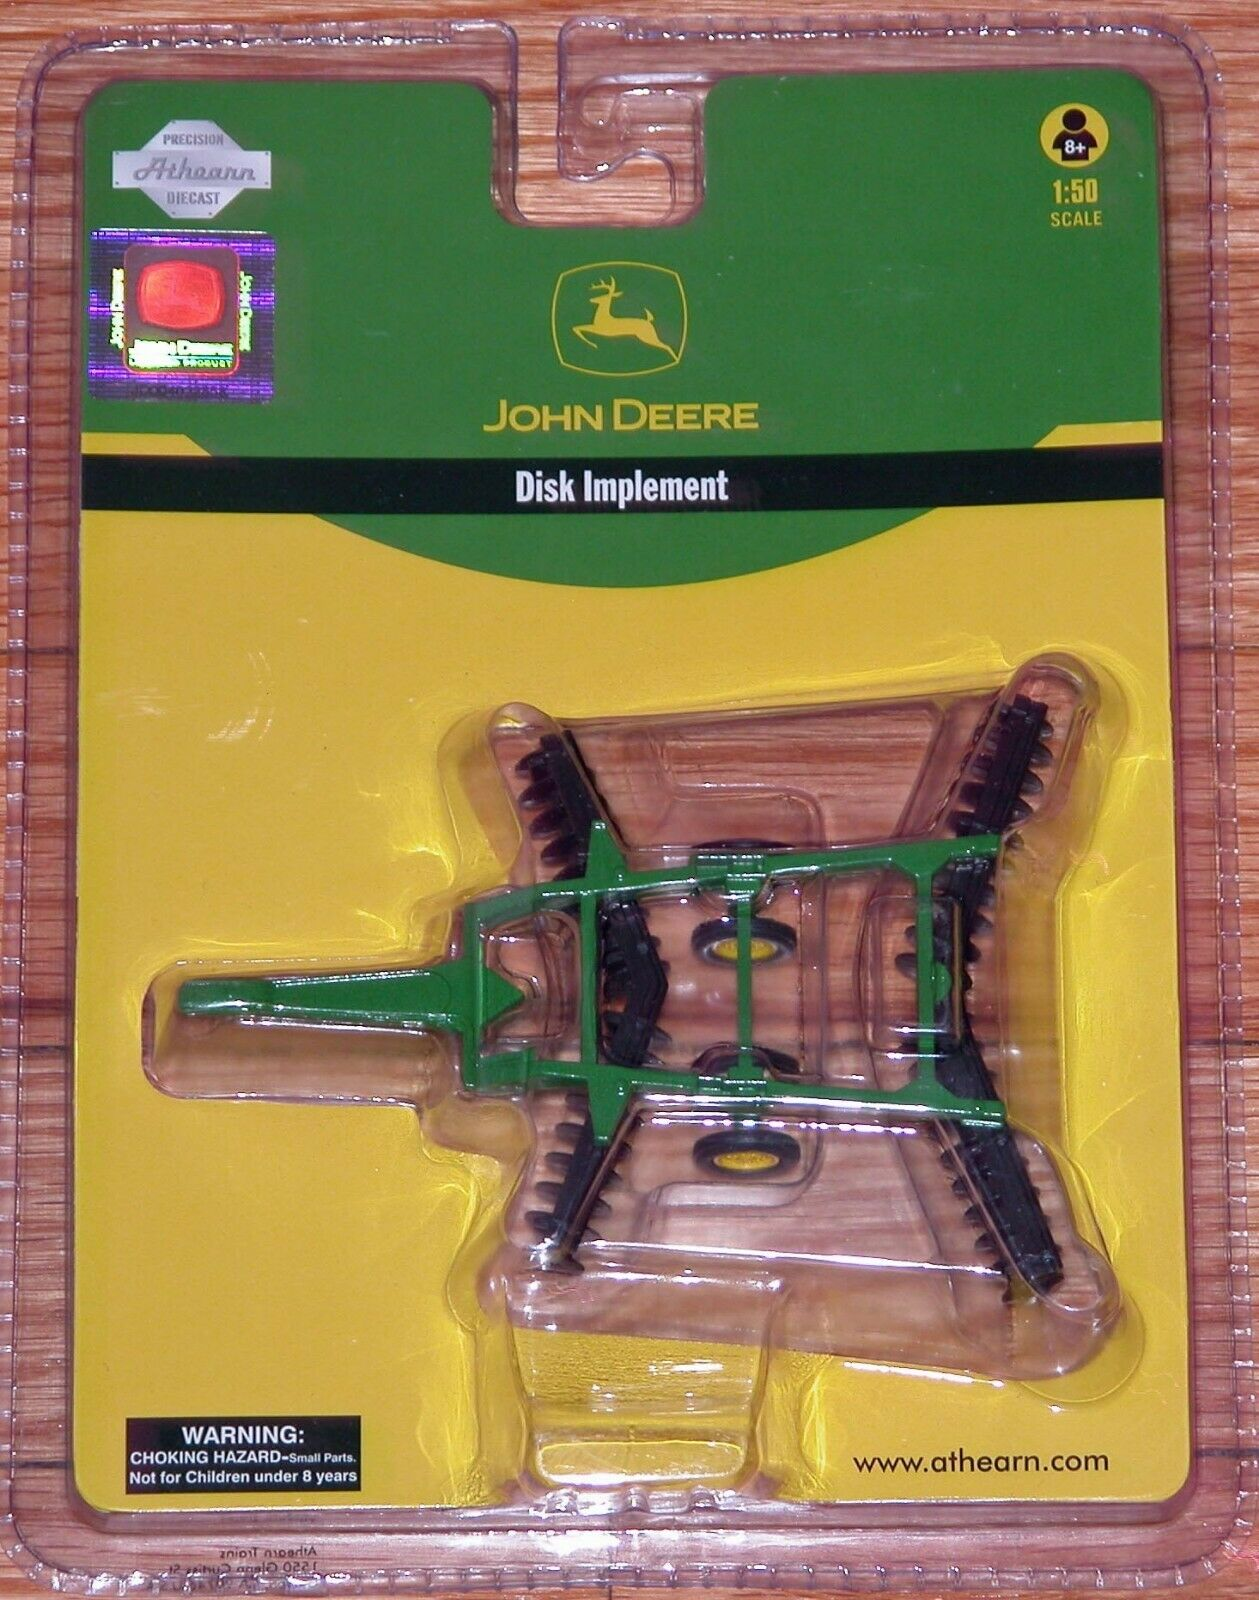 ATHEARN 77635 DISK IMPLEMENT JOHN DEERE 1 50 SCALE